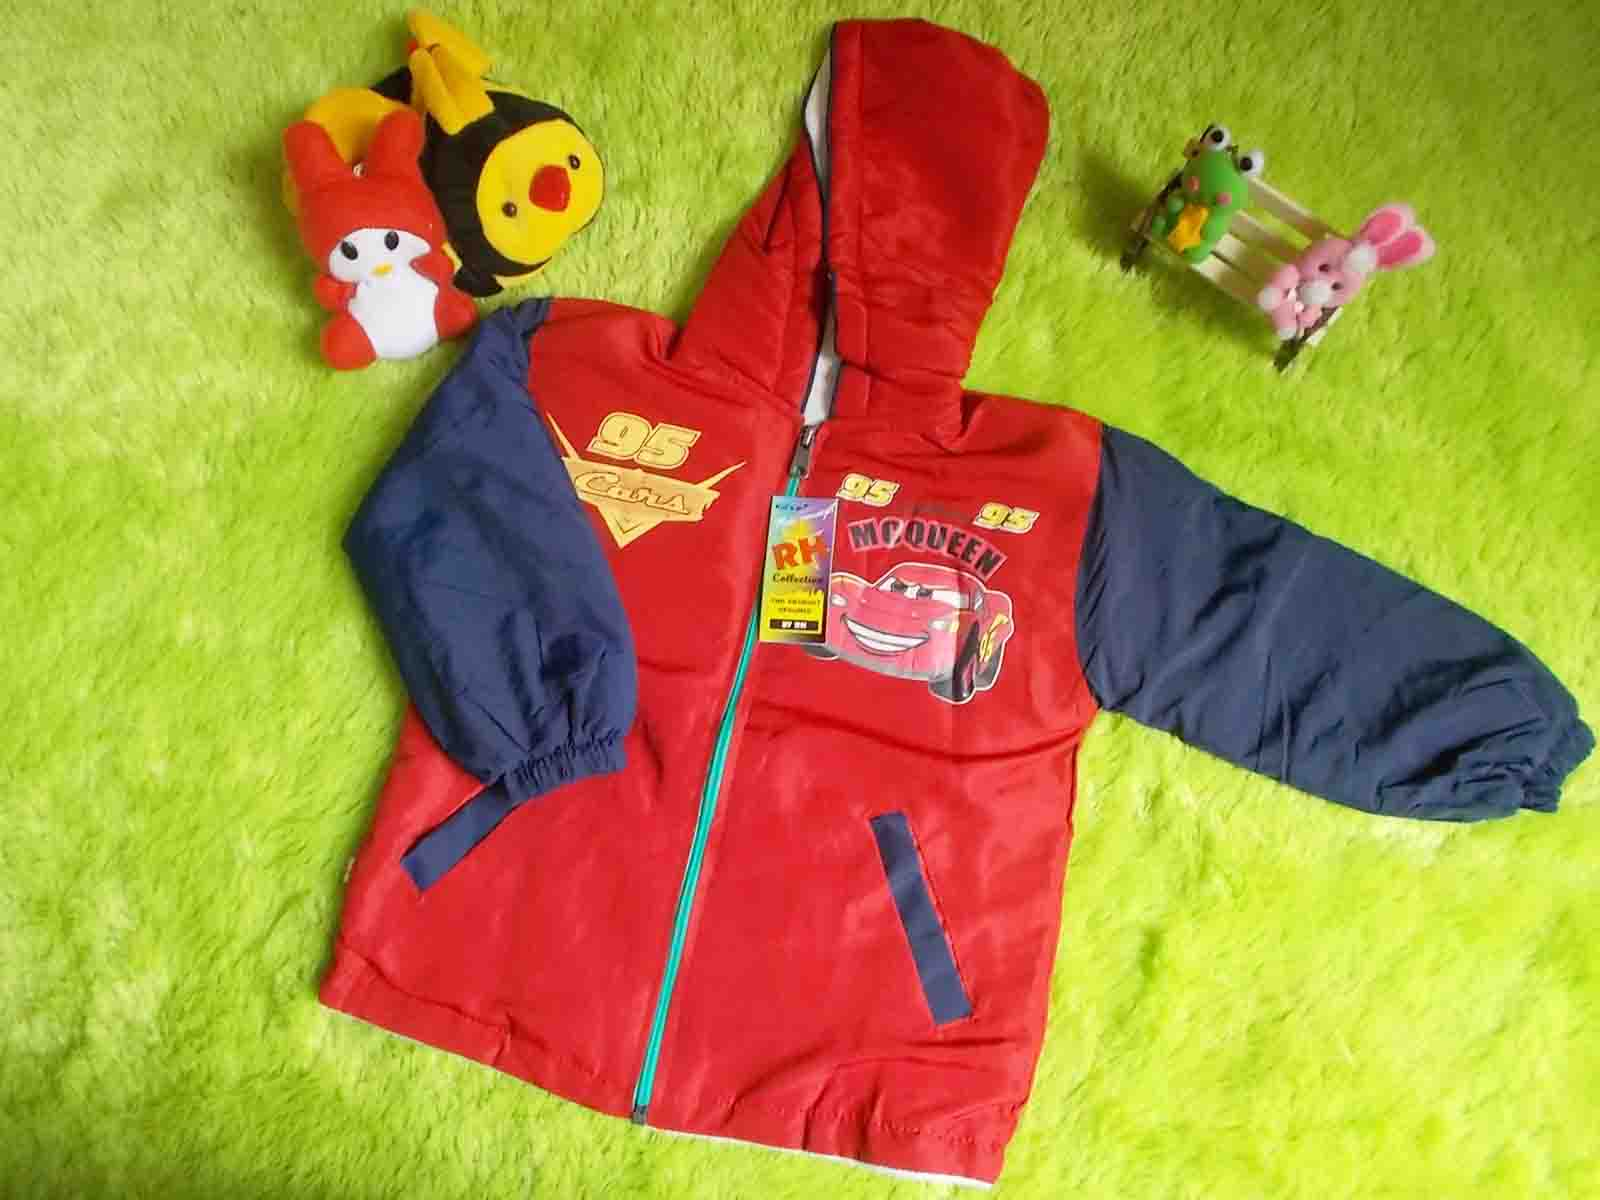 jaket anak bayi batita waterproof anti air 2-3th cars mcqueen merah 50 lebar dada 35cm panjang 39cm